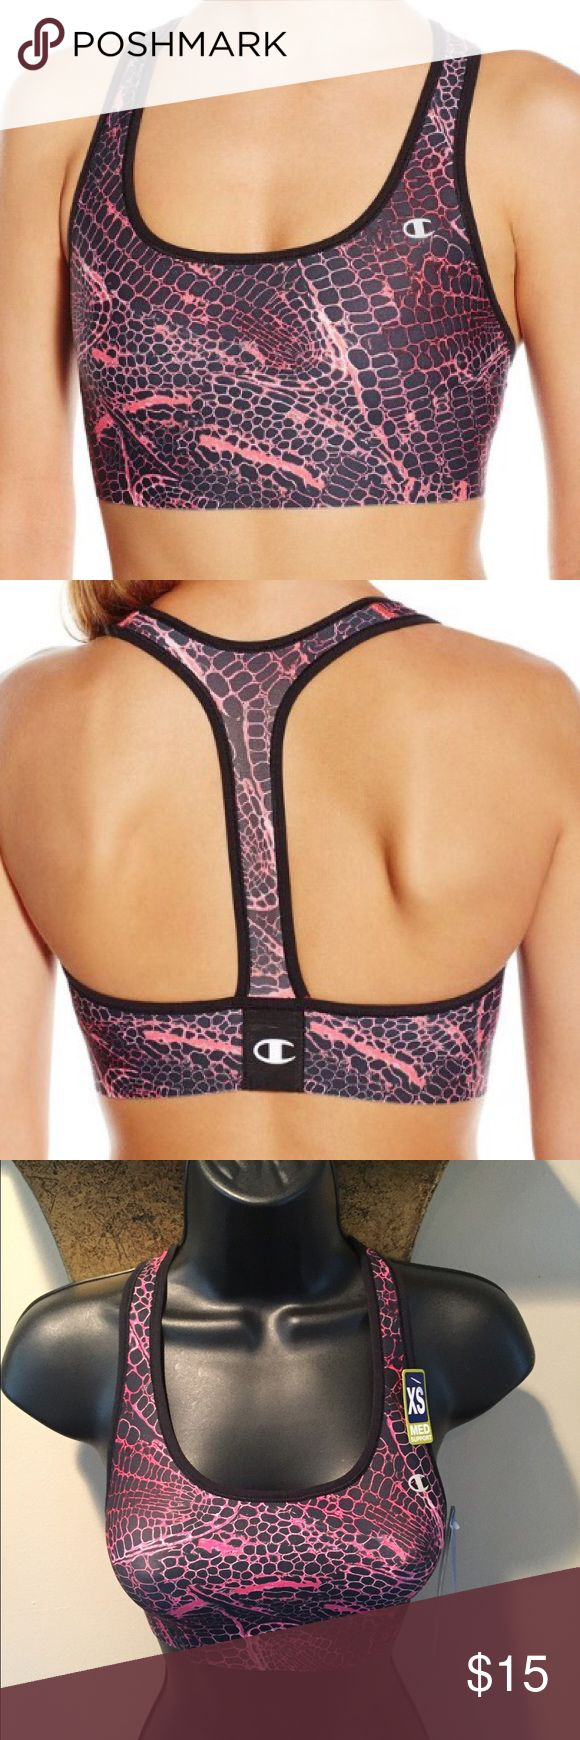 👄Sports Bra👄 Sports Bra-87% Polyester-13% Spandex-Perfect for the gym-Price Firm unless bundled for the discount‼️‼️ Champion Intimates & Sleepwear Bras